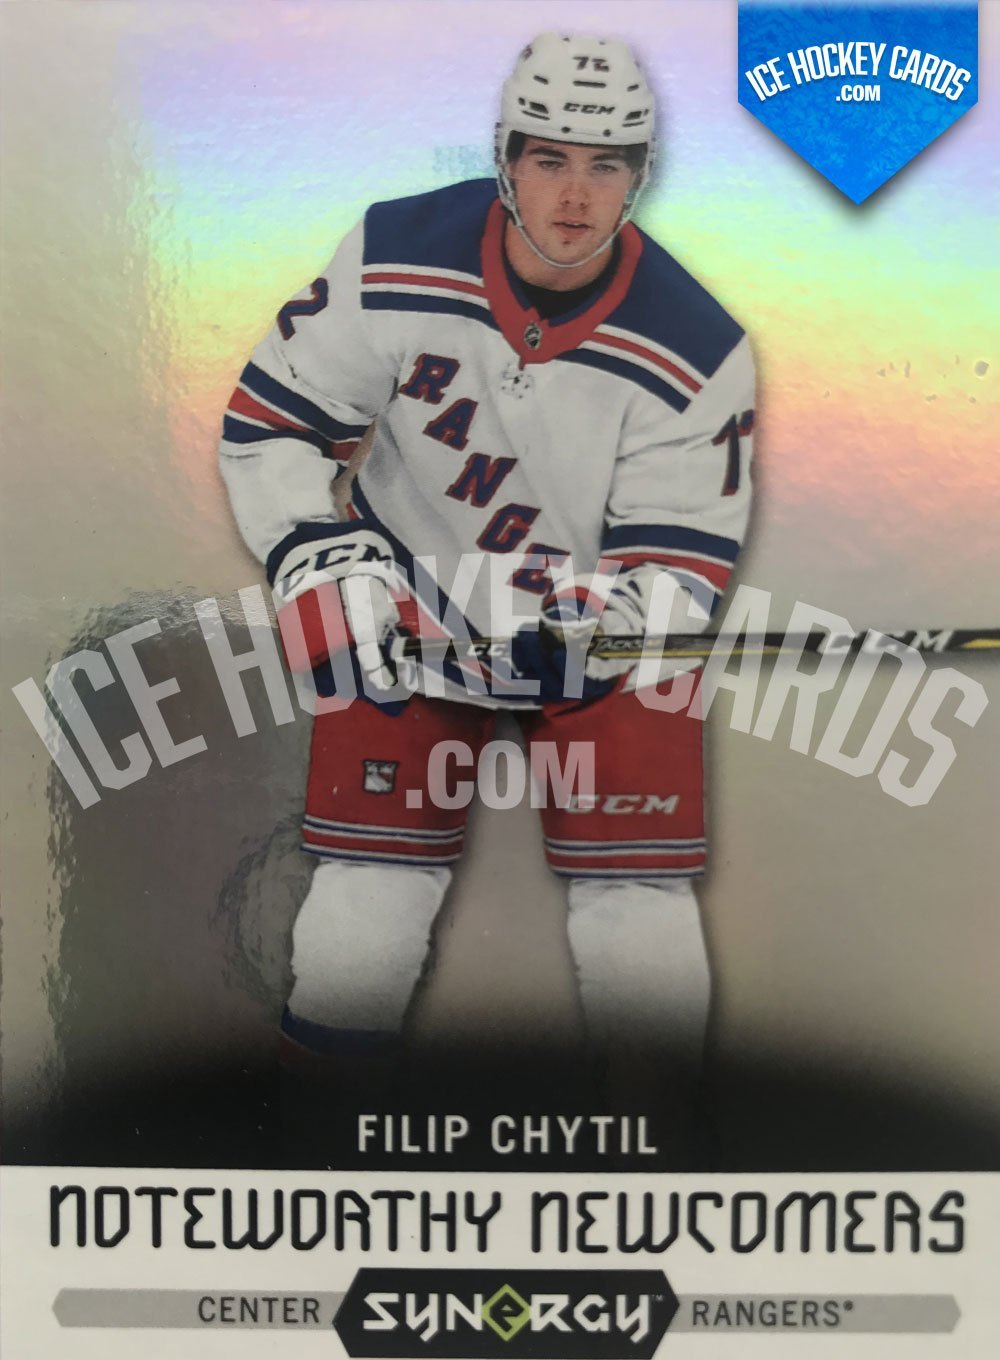 Upper Deck - Synergy 19-20 - Filip Chytil Noteworthy Newcomers